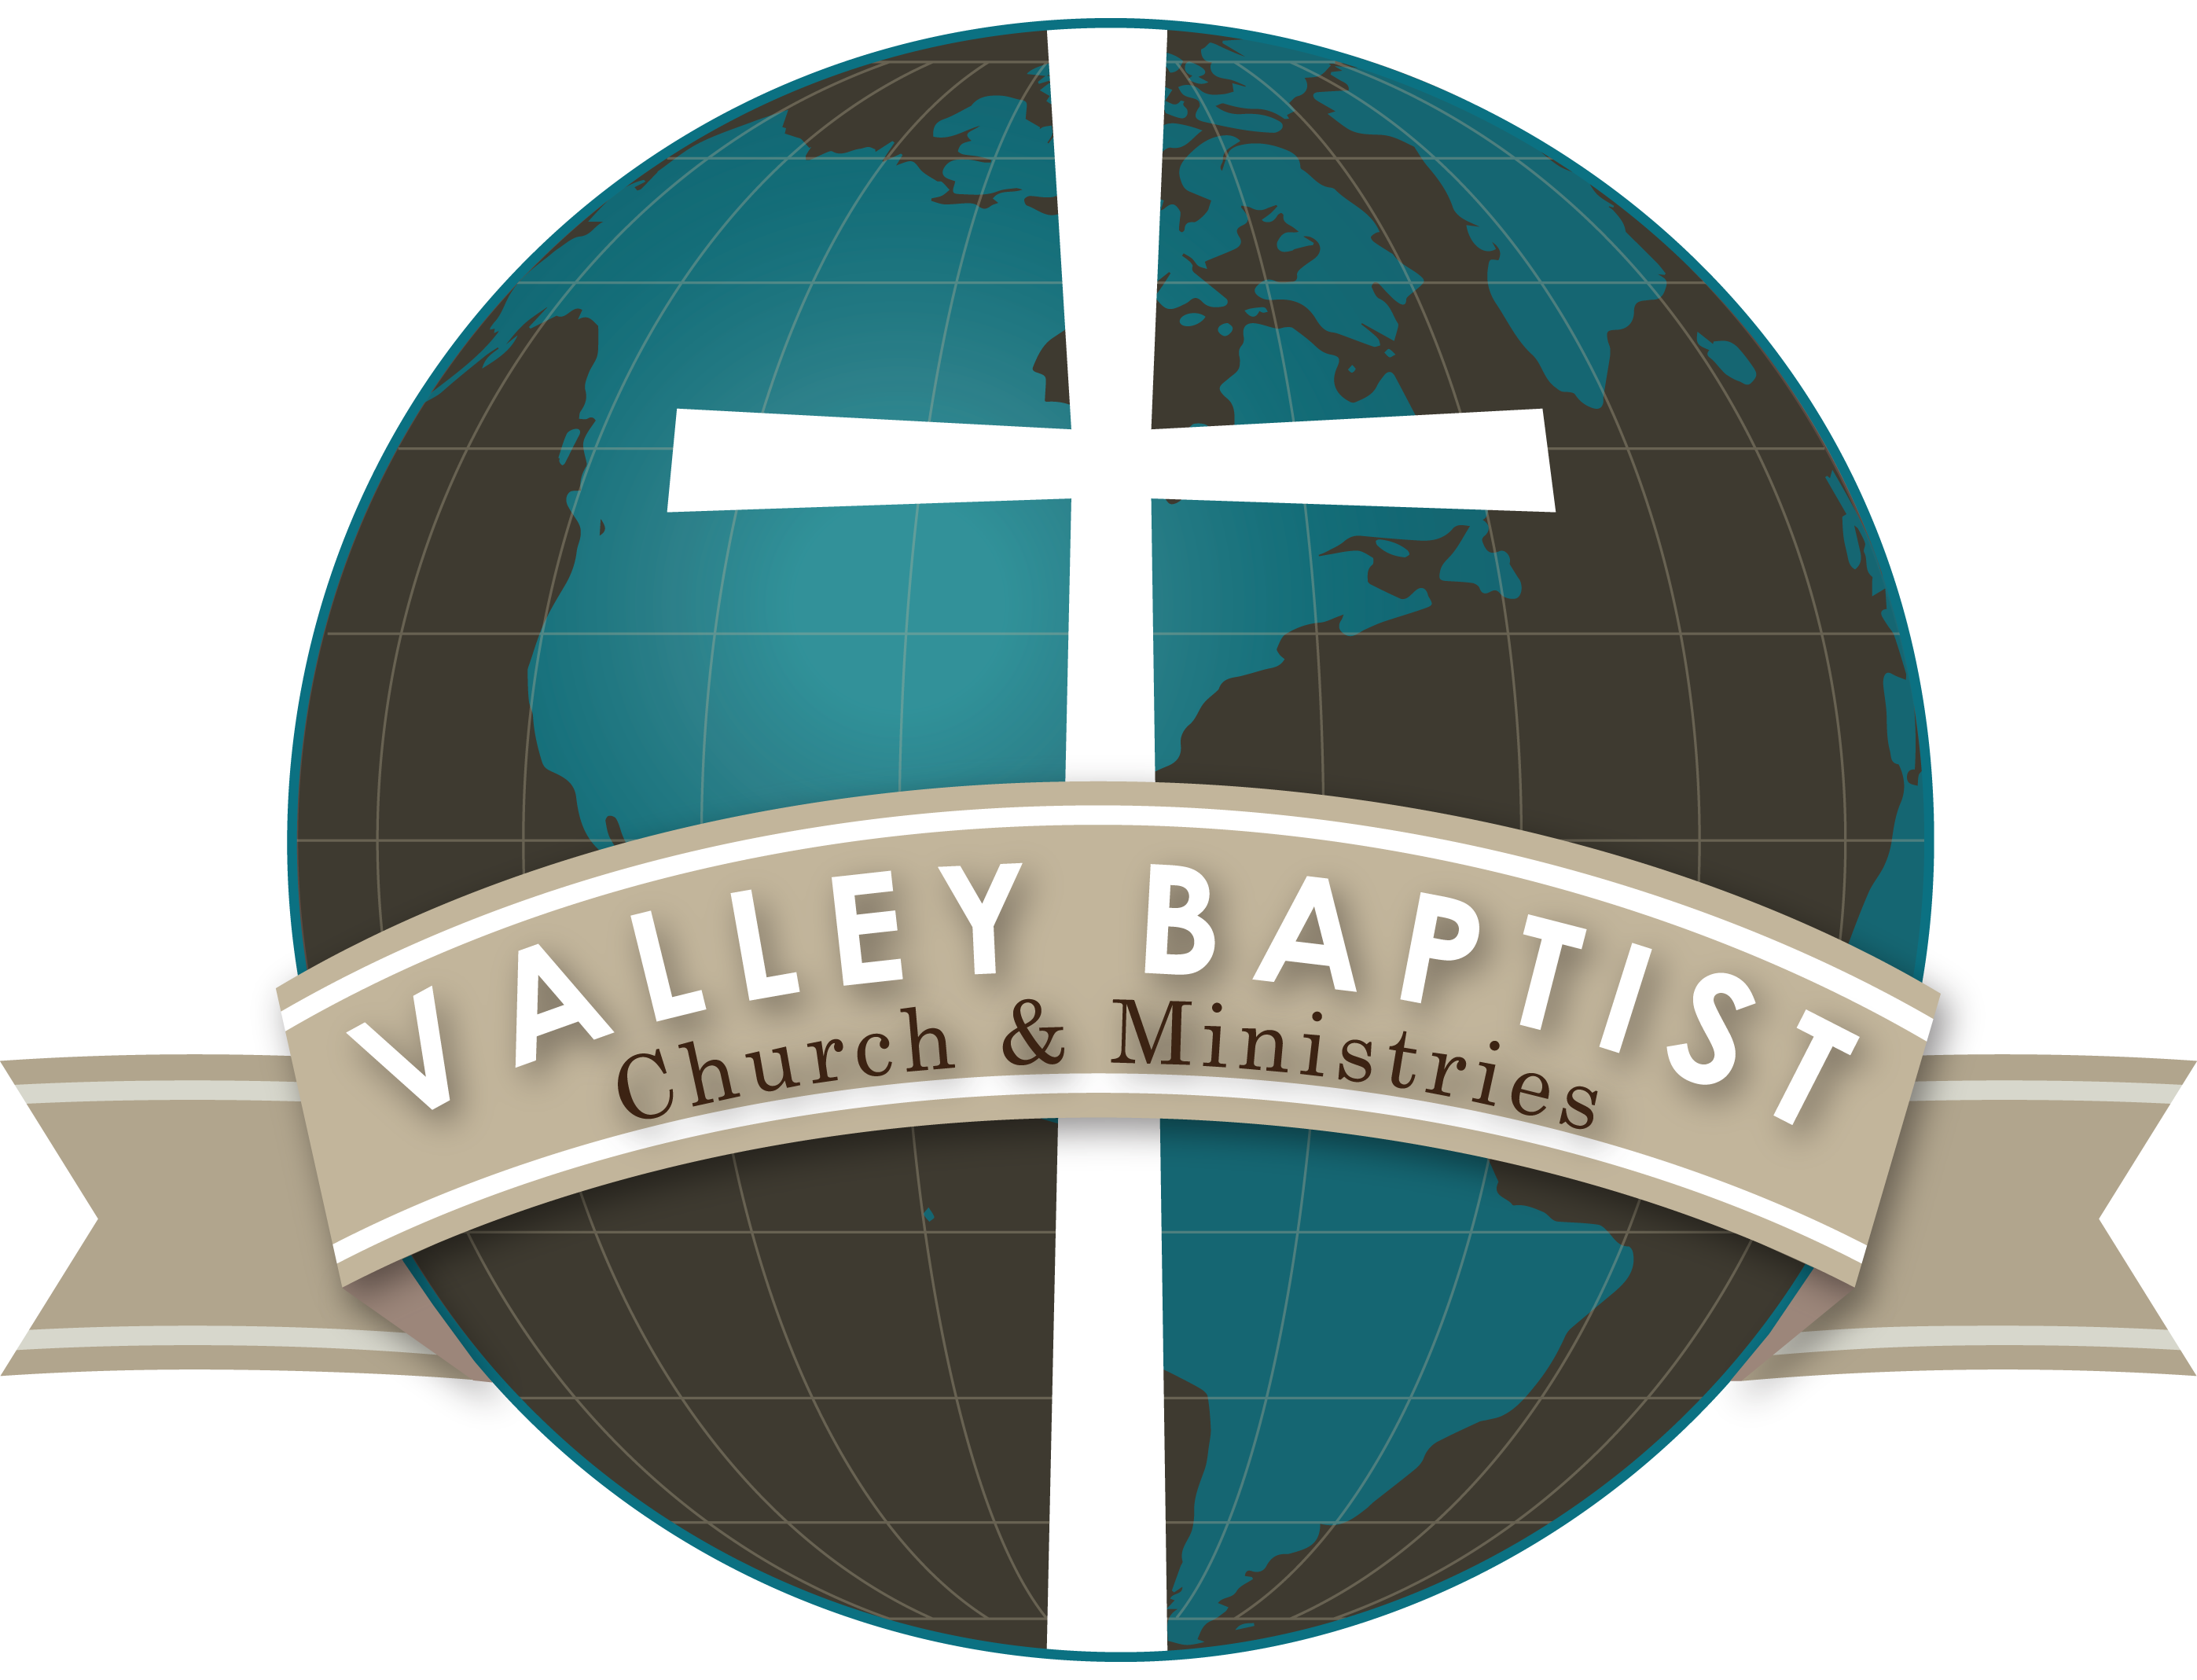 Valley Baptist Church of Coatesville, PA